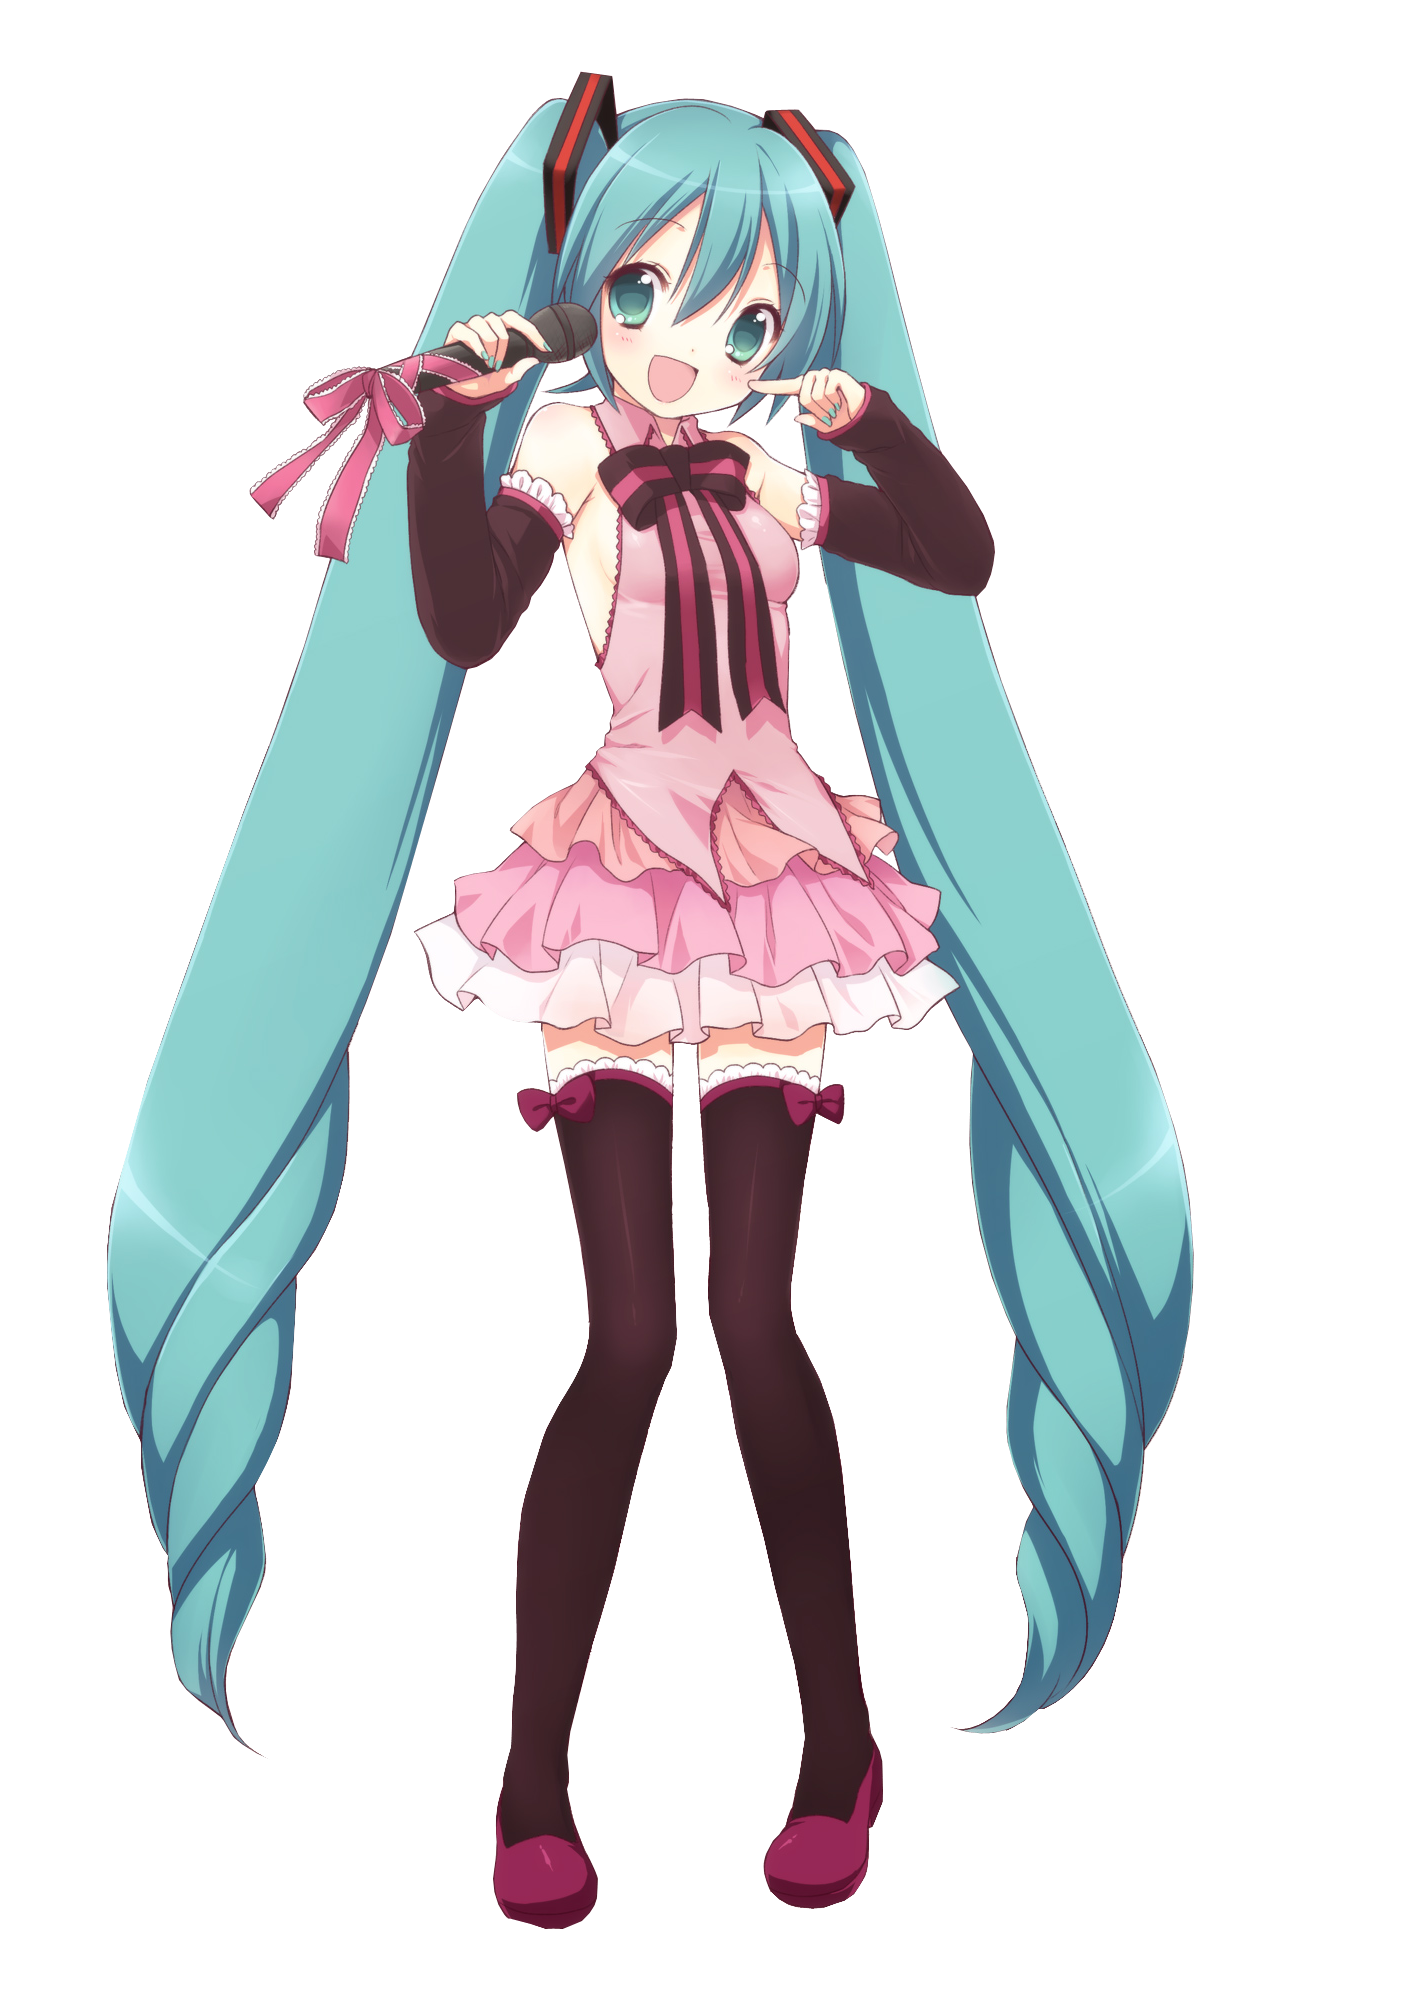 Renders Hatsune miku, Vocaloid and Anime